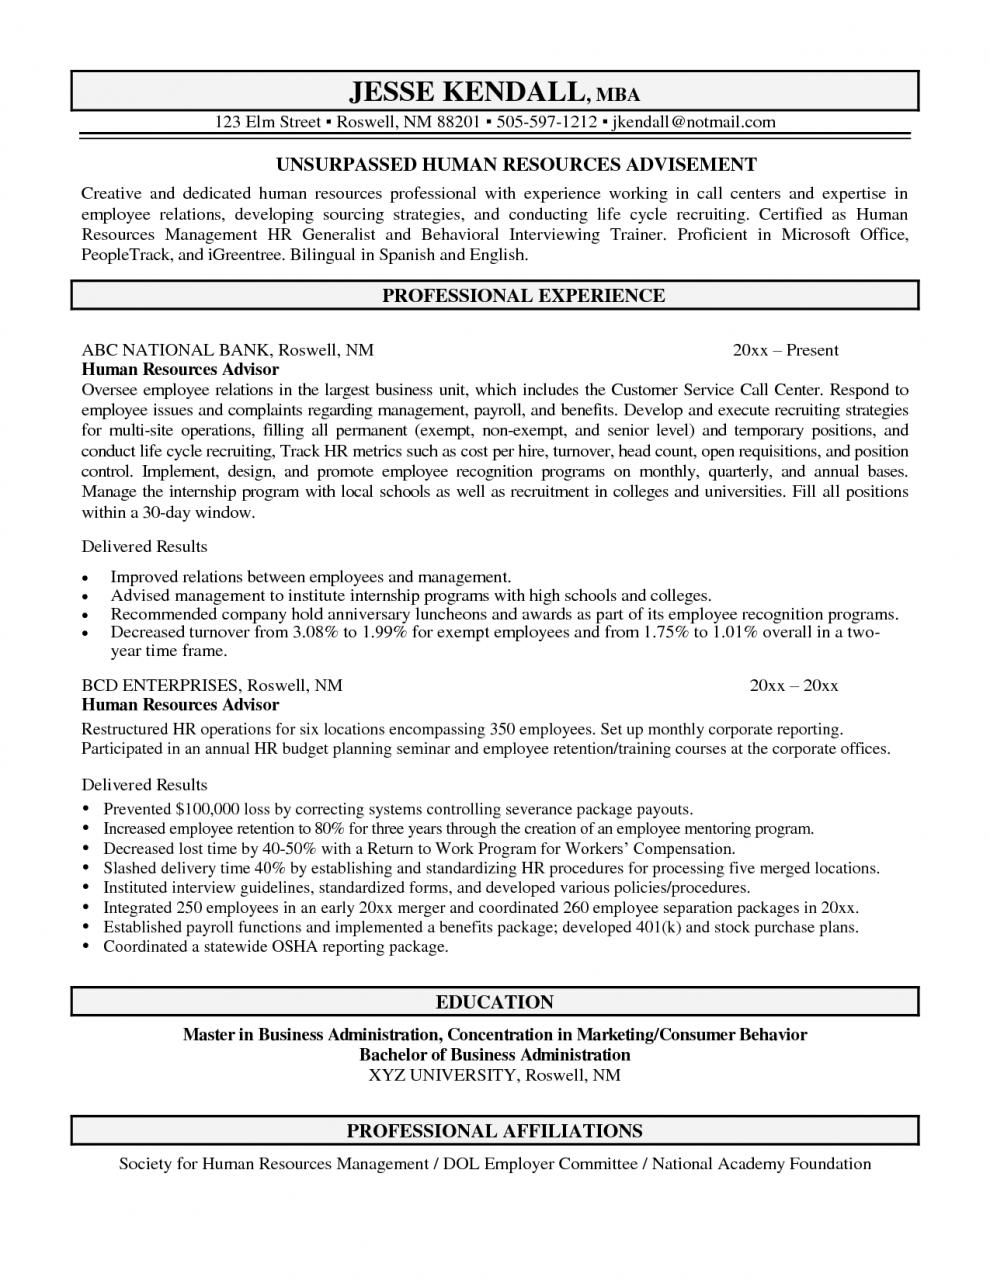 Letter Cover Job Application Template For Human Resources Resume